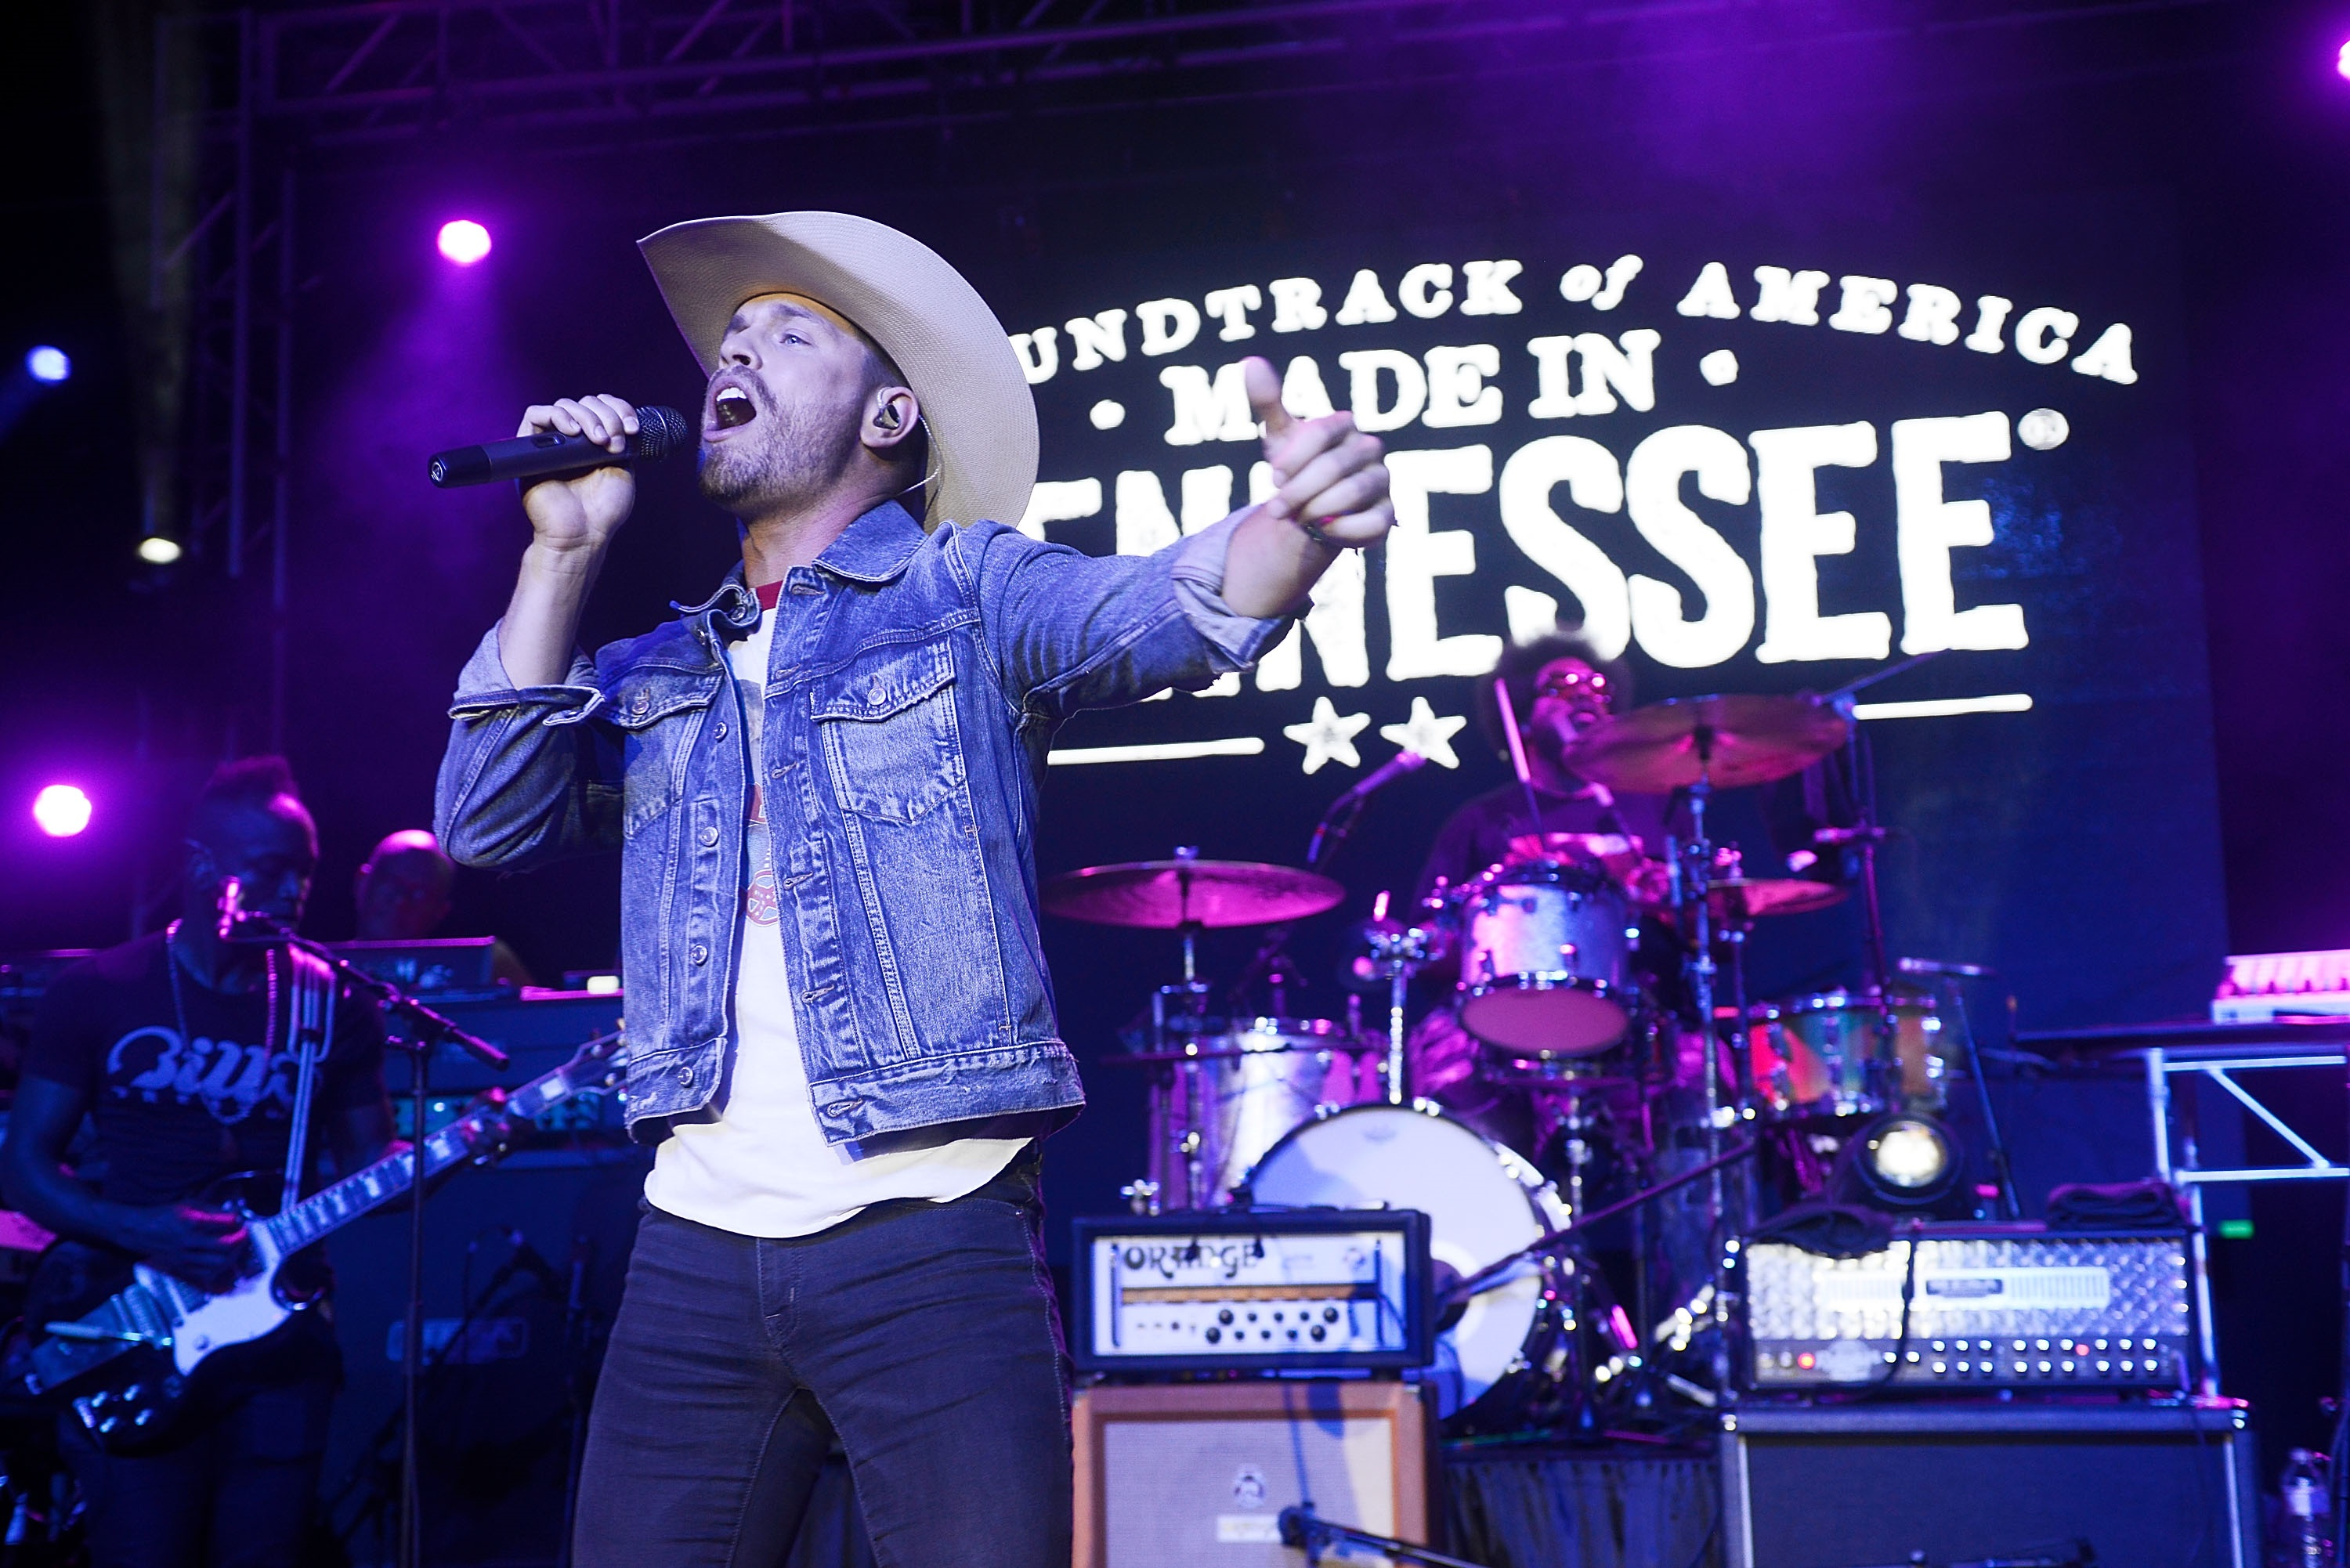 Four Magical Moments From The Six Degrees to Tennessee Roots Jam in Memphis